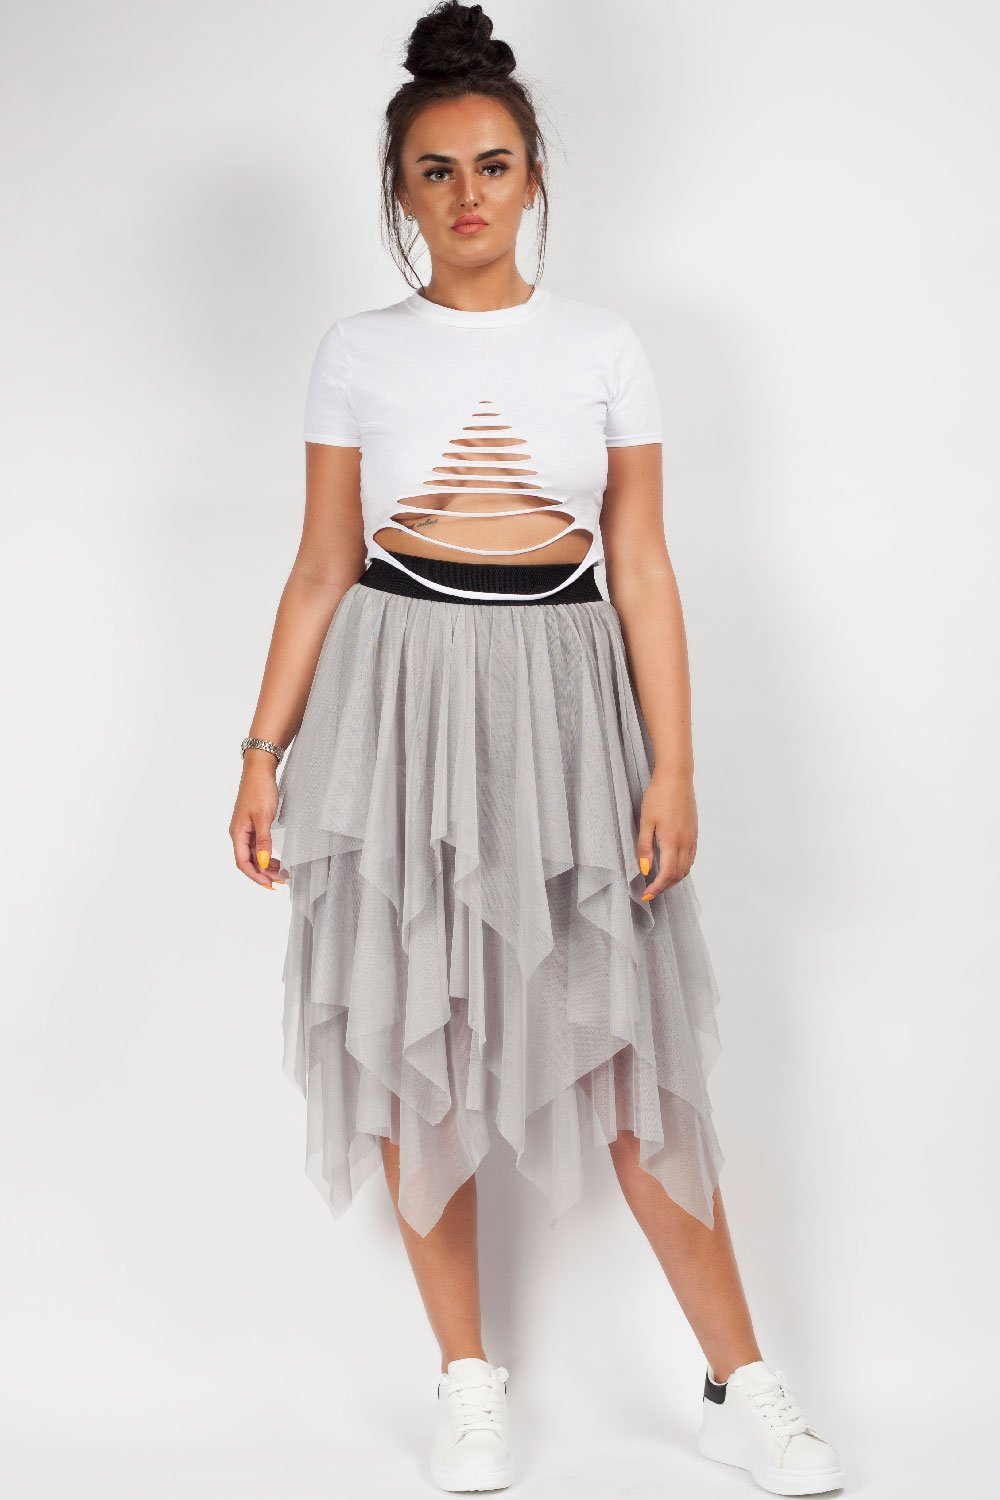 tulle midi skirt on sale uk